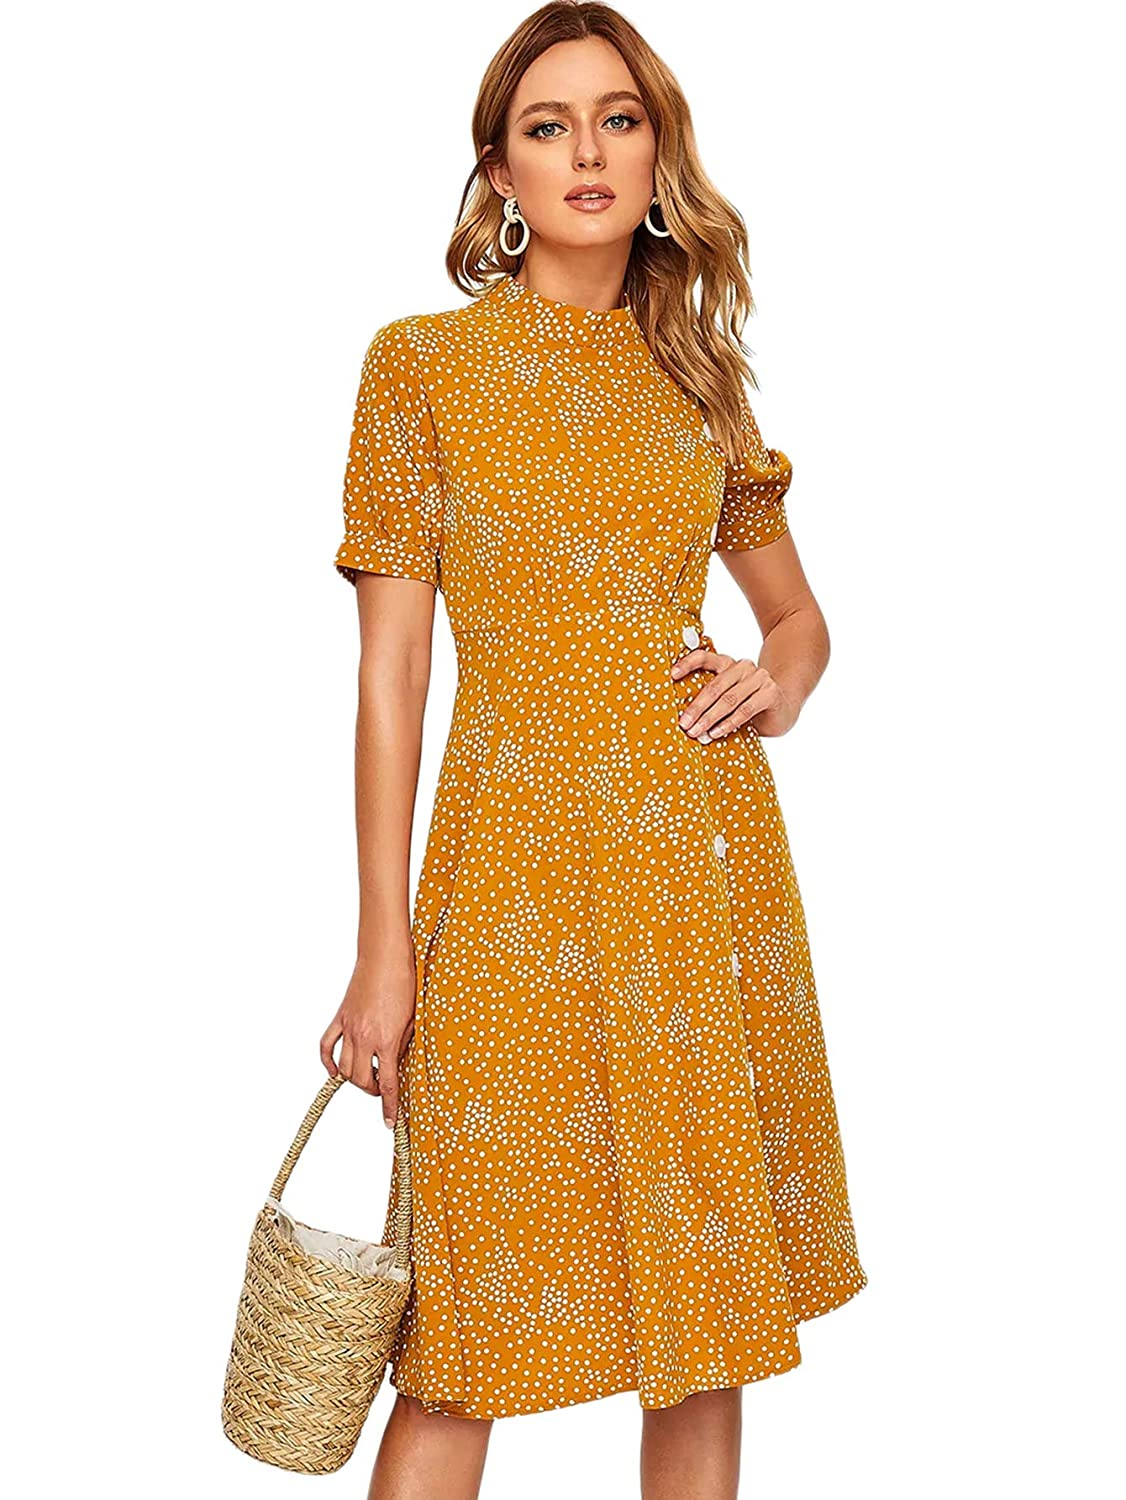 1930s Day Dresses, Afternoon Dresses History SheIn Womens Casual Short Sleeve Polka Dot Button A Line Flare Midi Swing Dress $23.99 AT vintagedancer.com